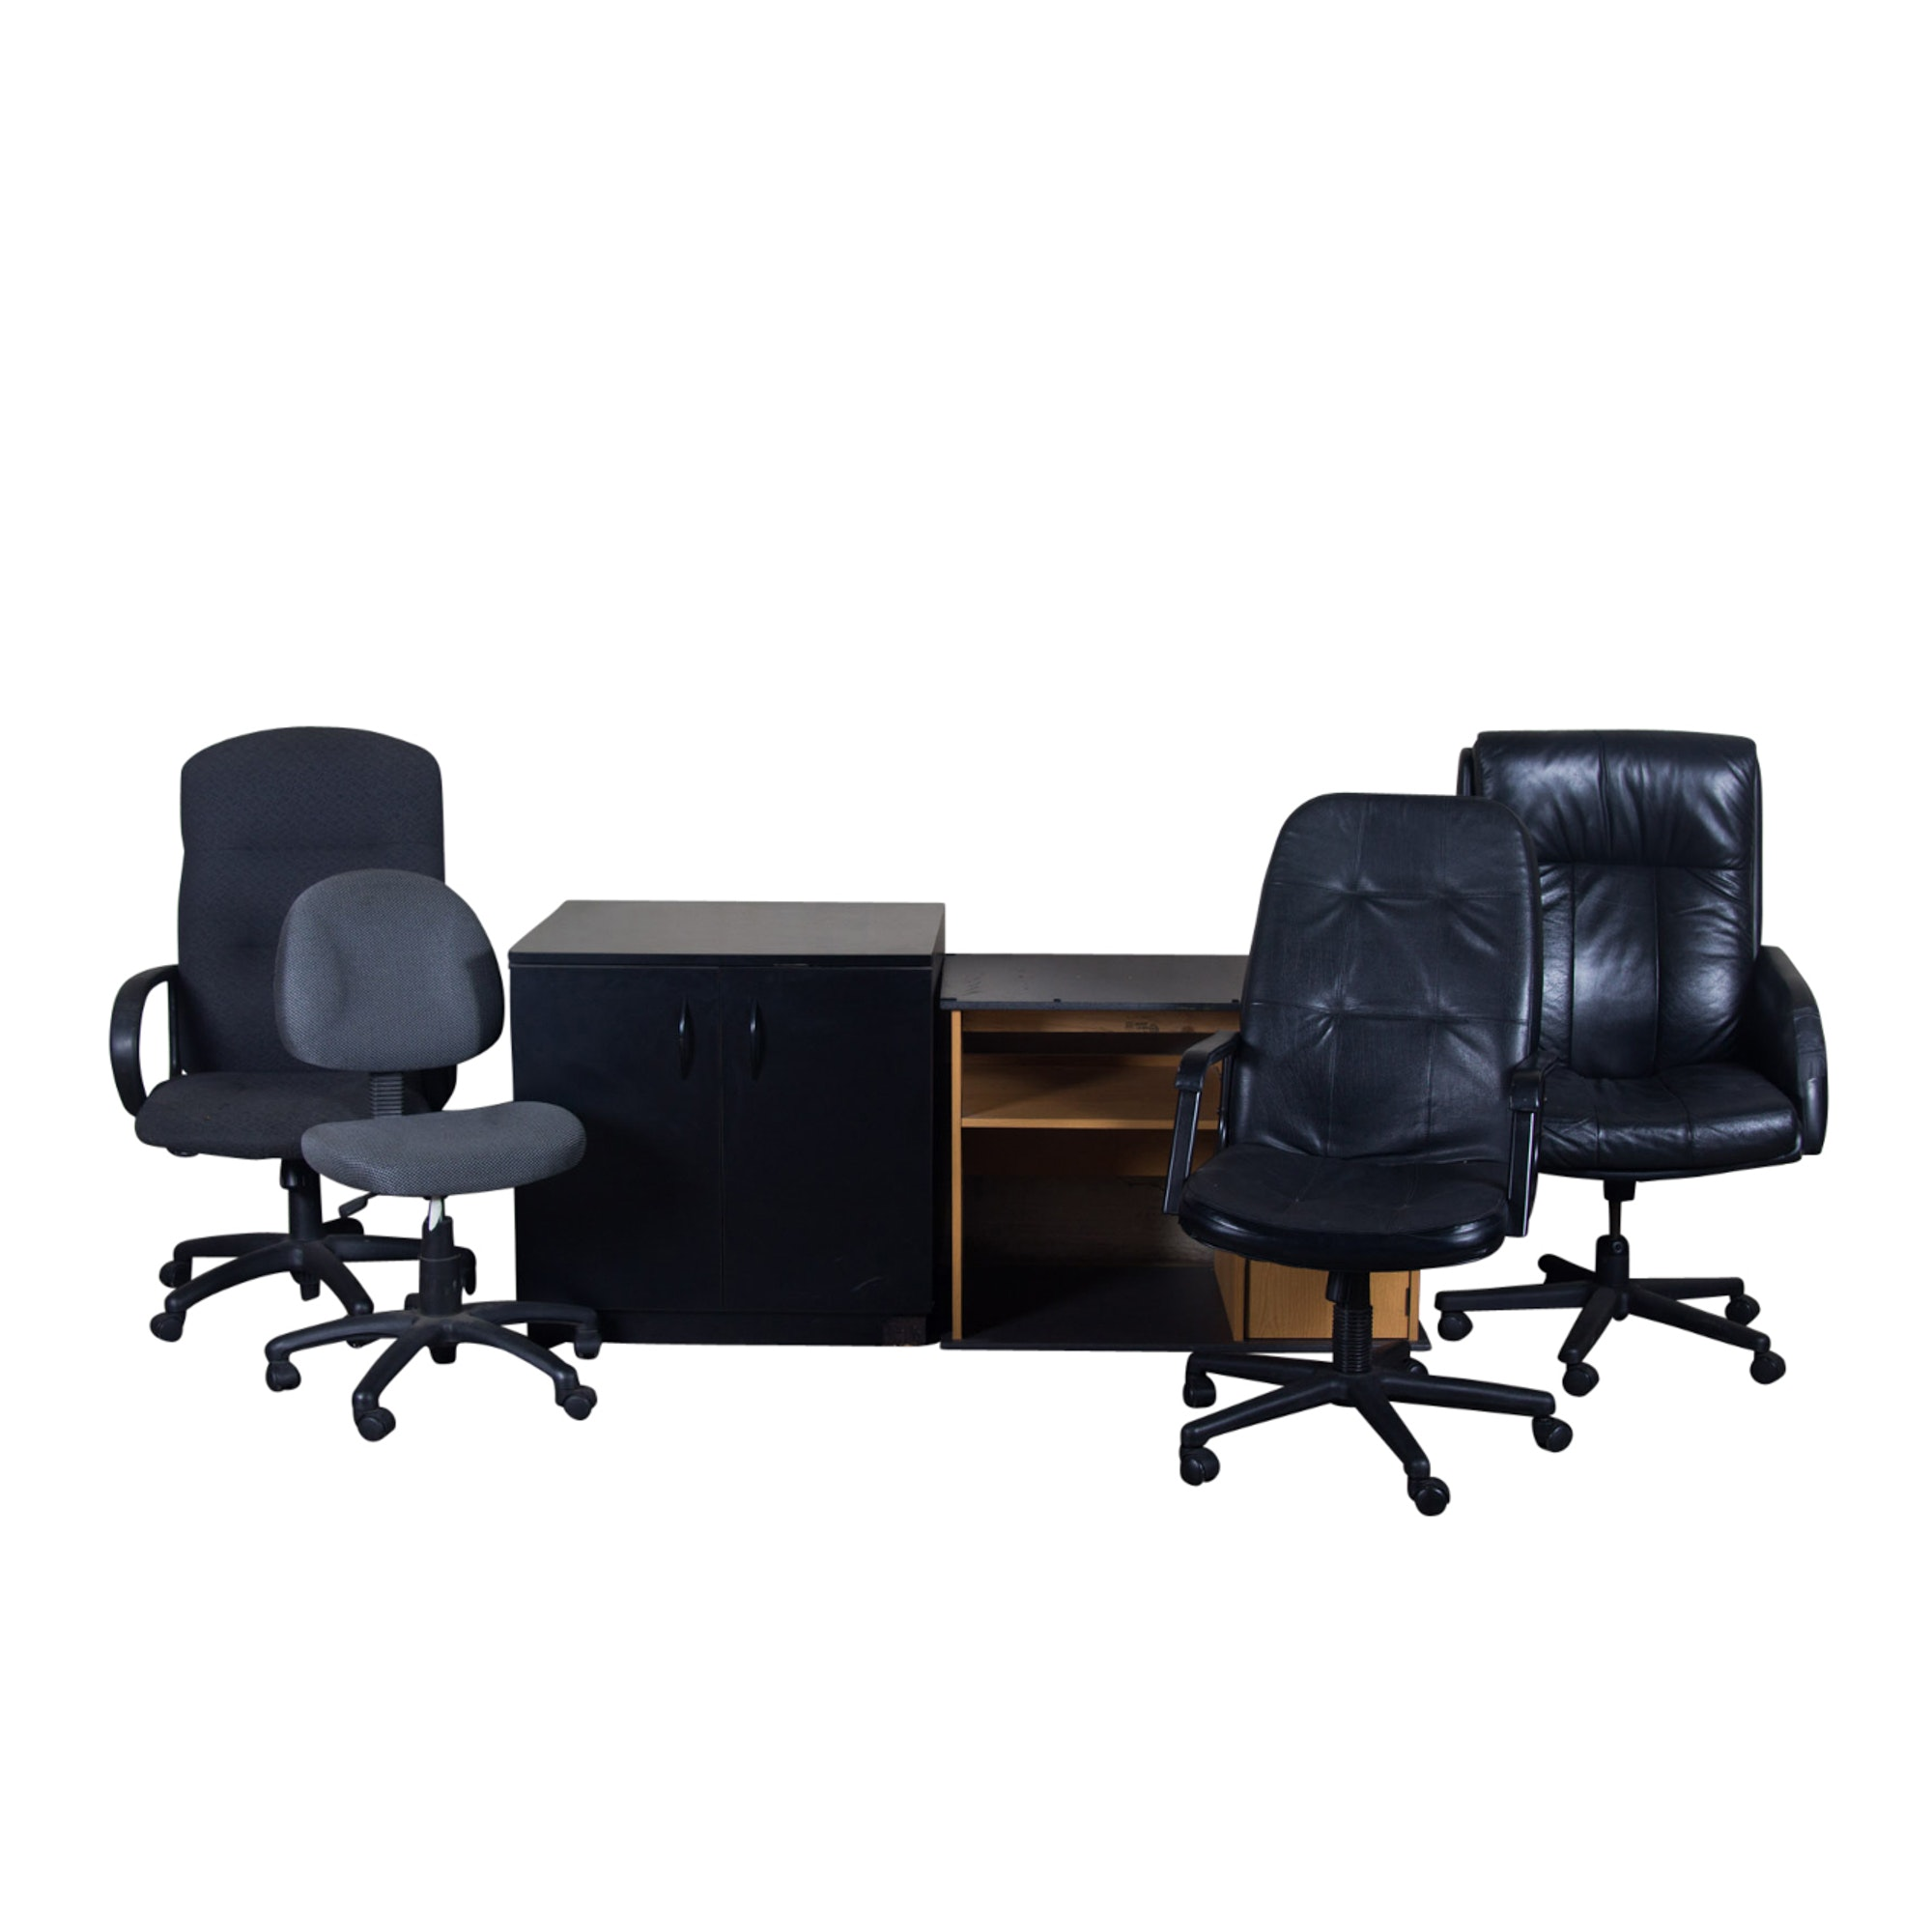 Assortment of Office Furniture and Chairs